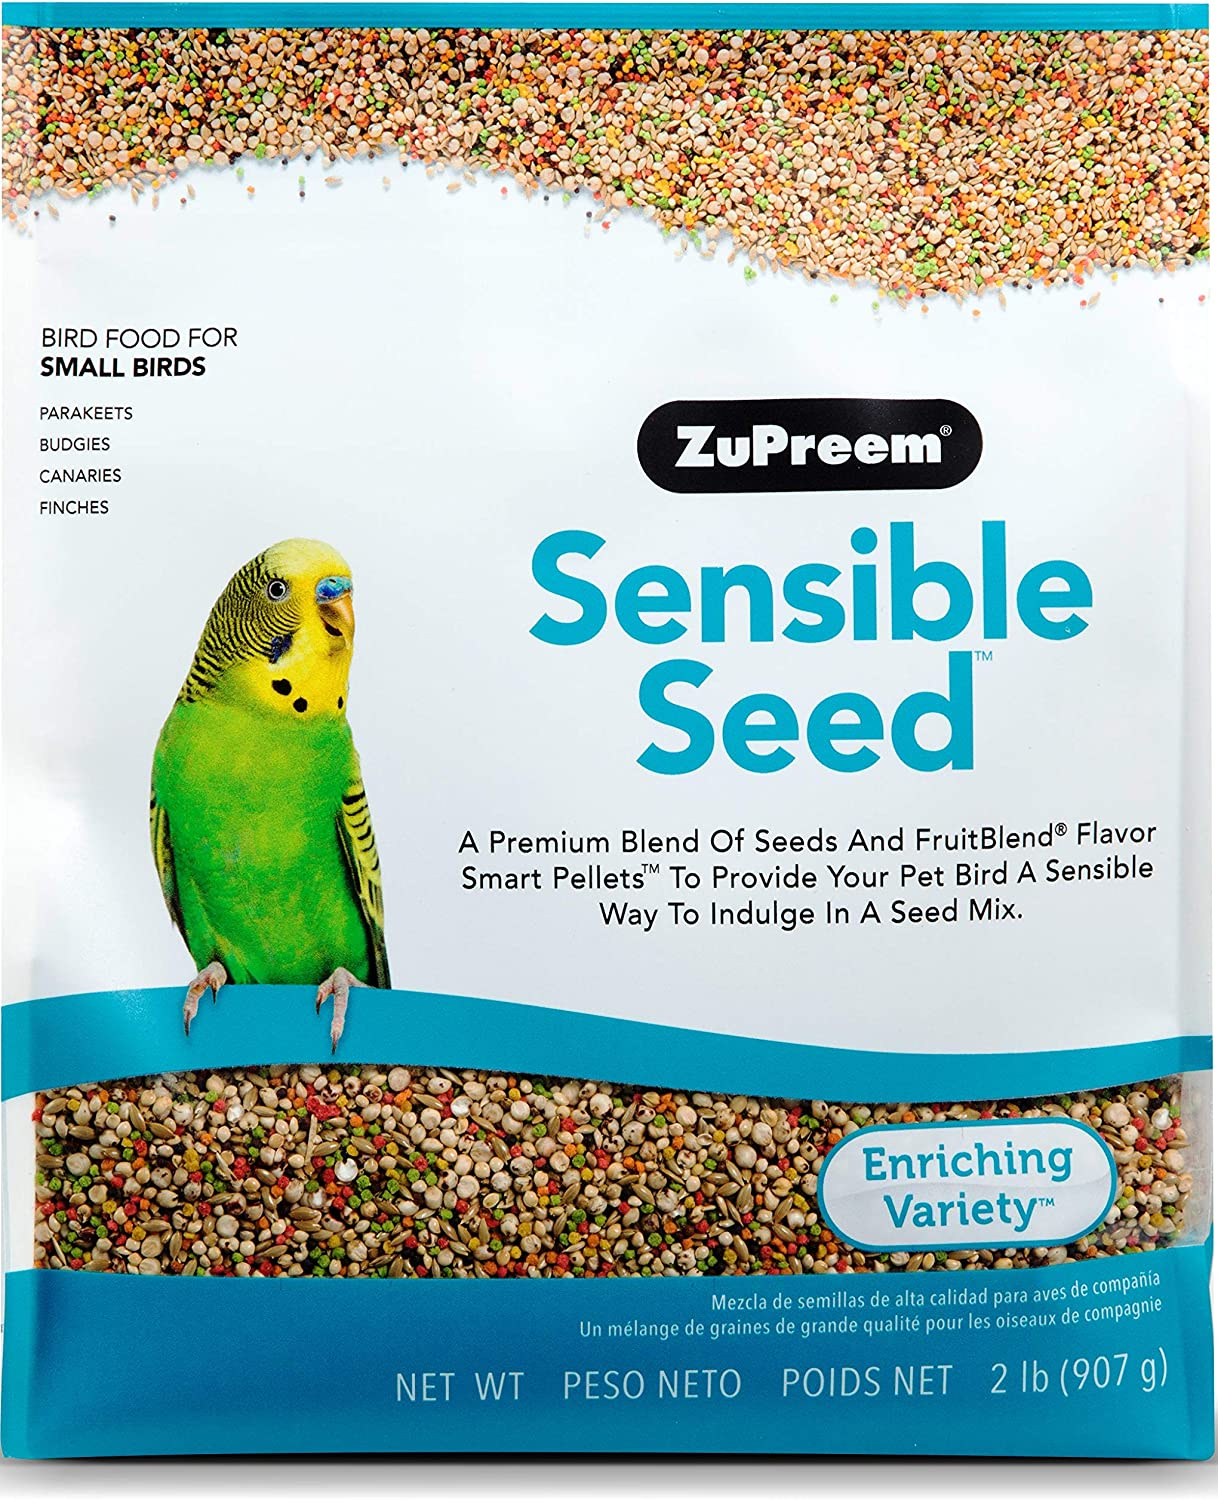 ZuPreem Sensible Seed Bird Food for Small Birds, 2 lb - Premium Blend of Seeds and FruitBlend Pellets for Parakeets, Budgies, Parrotlets, Canaries, Finches